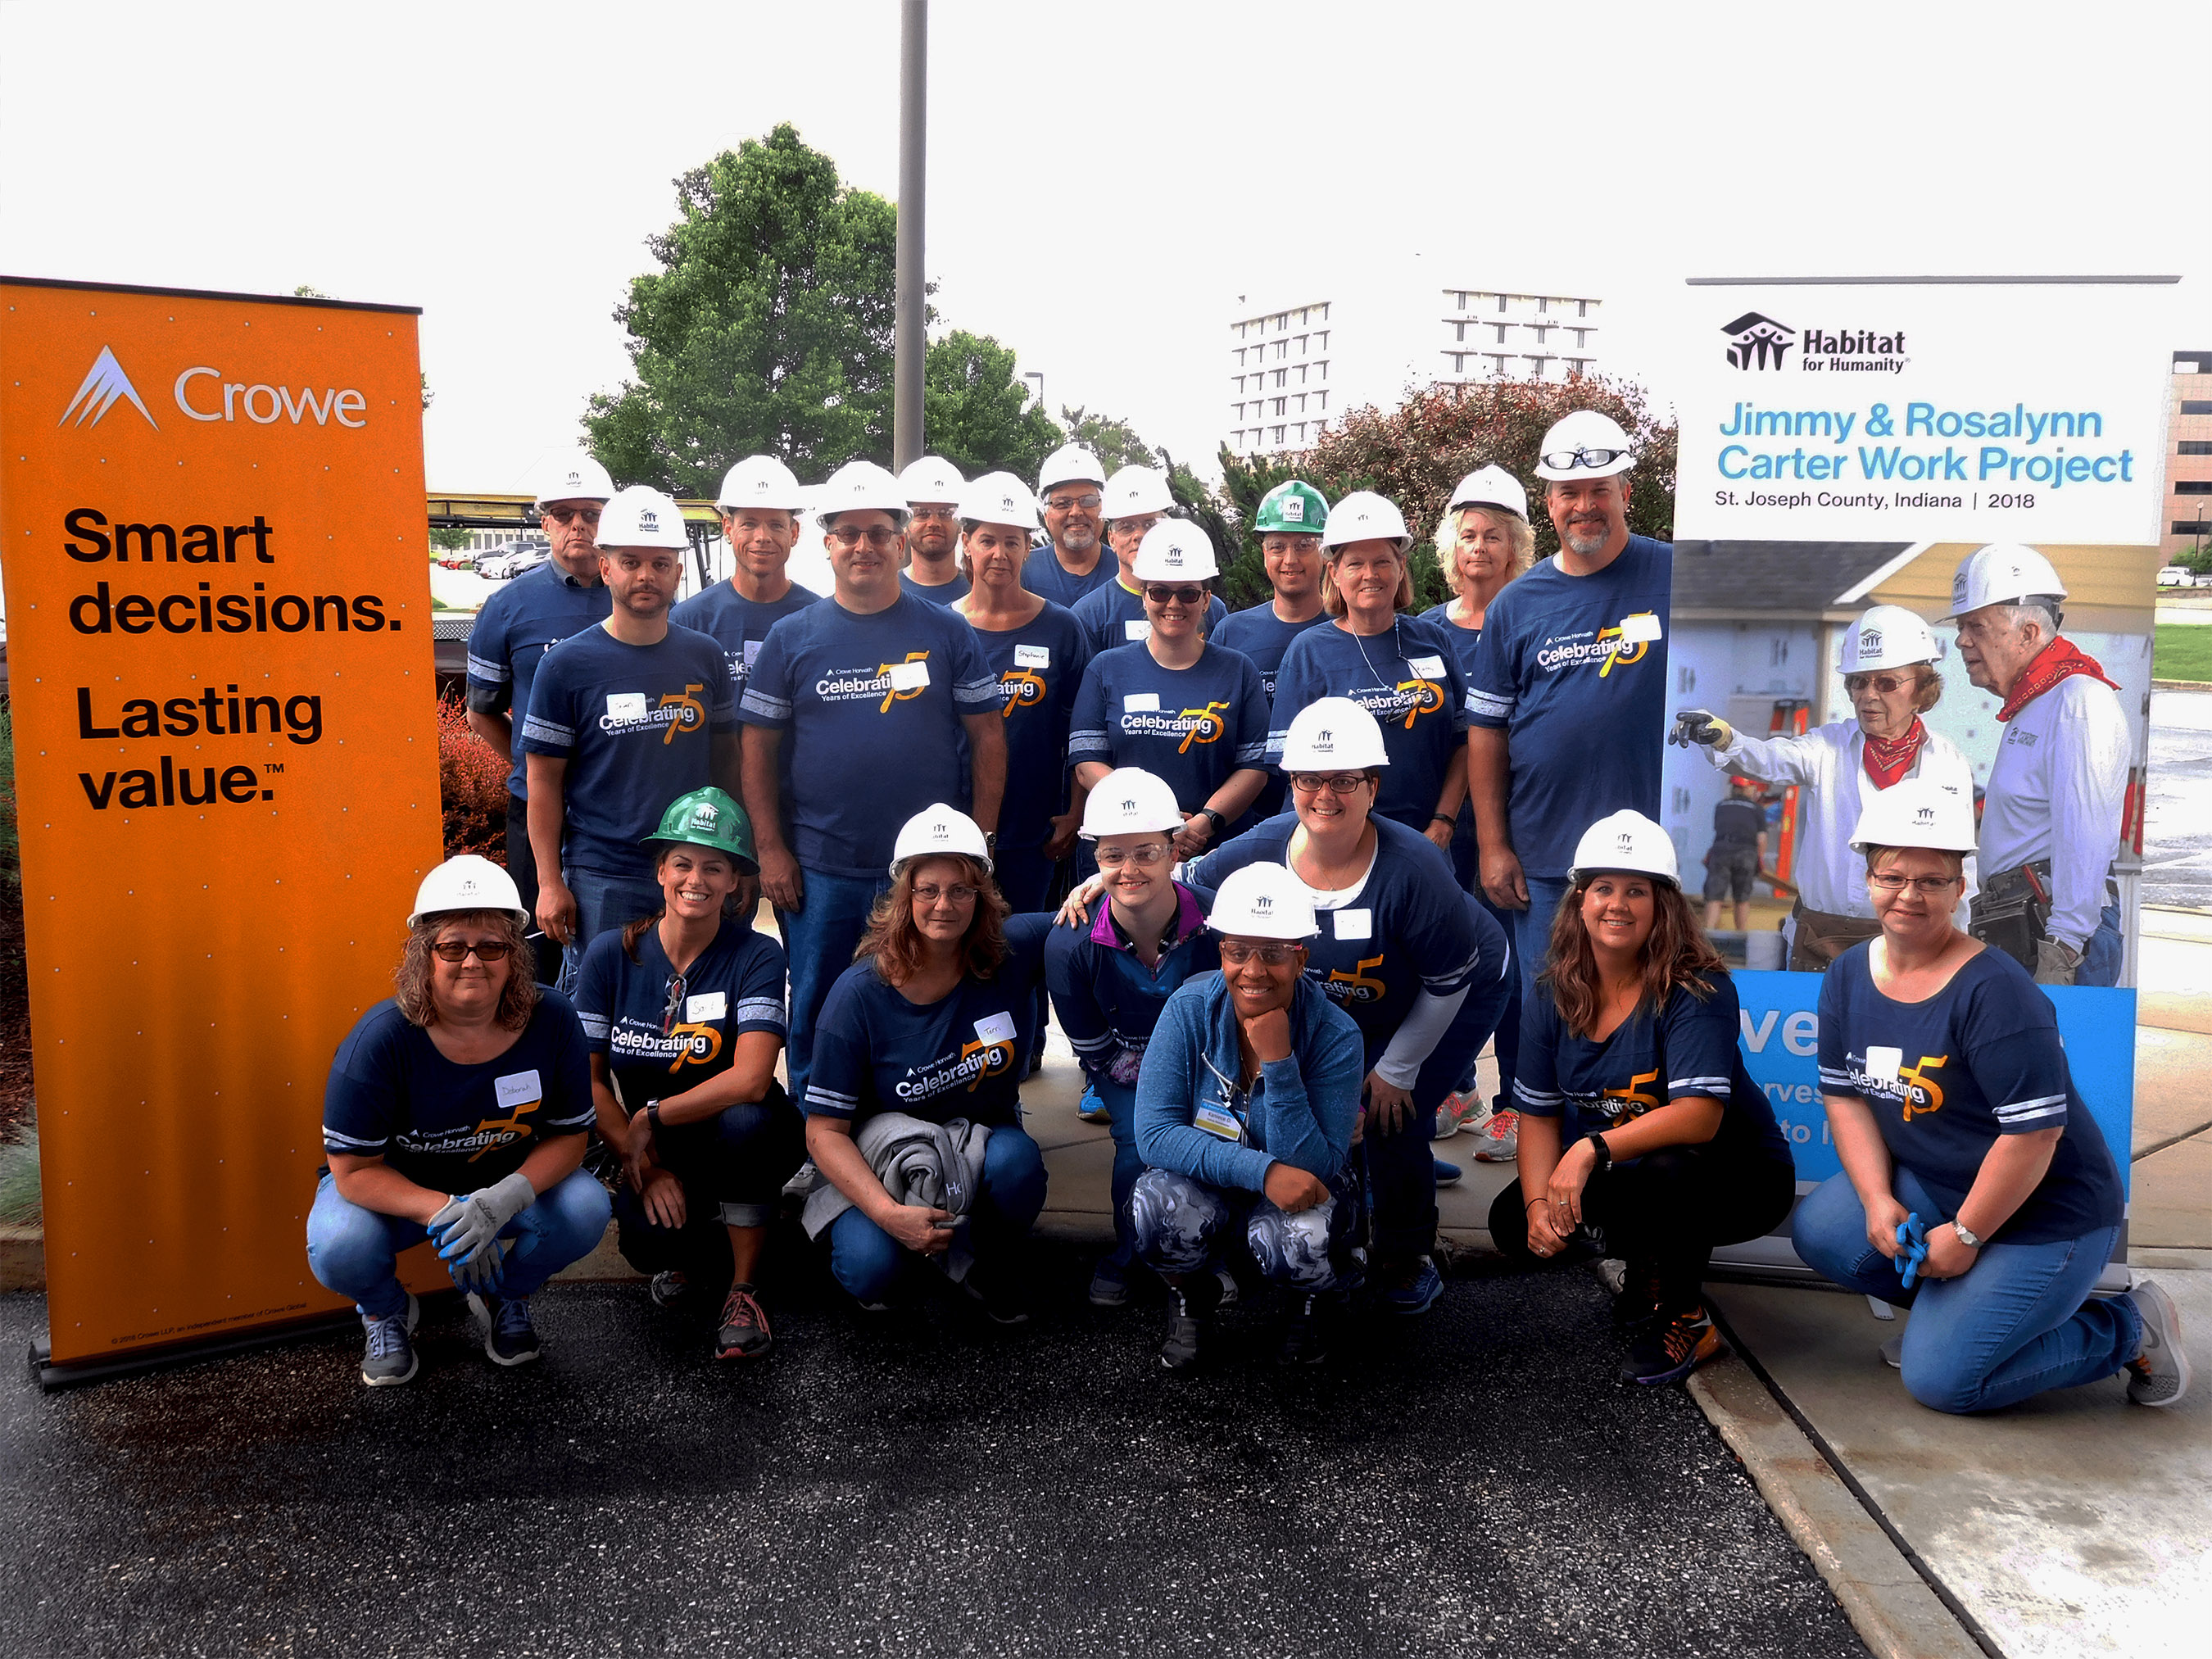 The Crowe South Bend office hosted a Habitat for Humanity build, supporting the Jimmy & Rosalynn Carter Work Project.